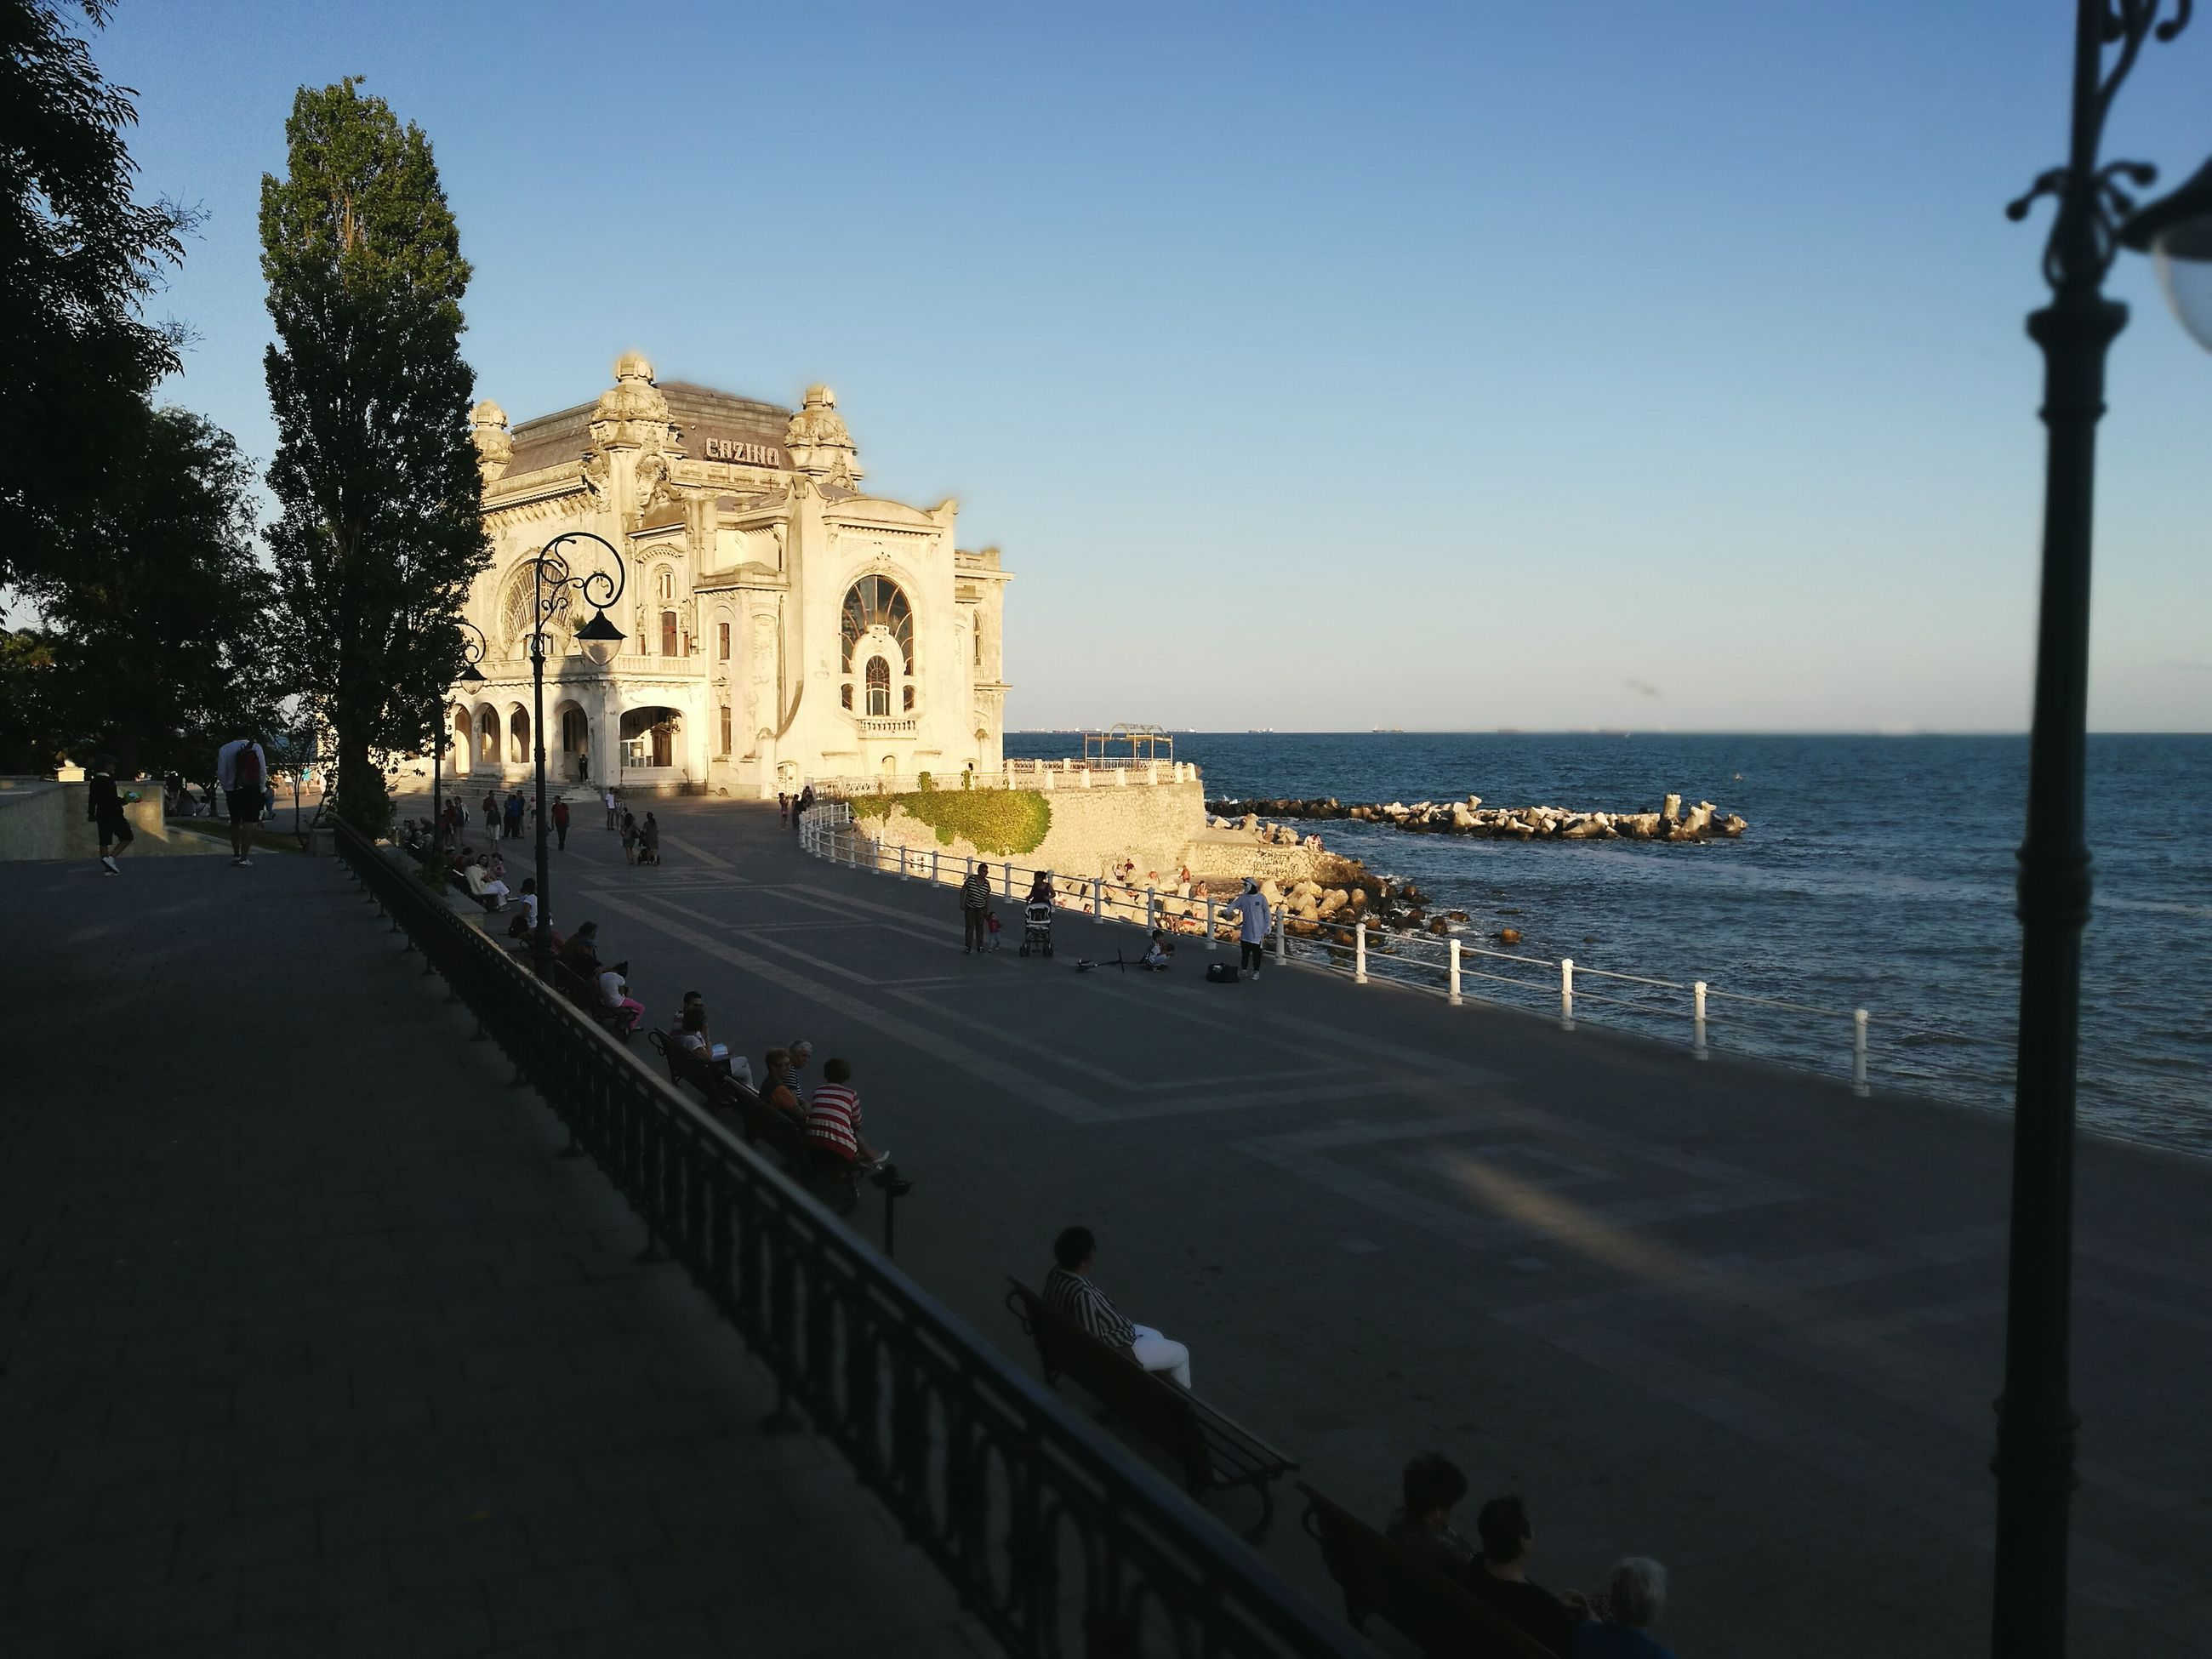 architecture, built structure, water, sea, clear sky, building exterior, horizon over water, large group of people, spirituality, street light, tourism, travel destinations, tourist, place of worship, vacations, tranquility, outdoors, scenics, person, day, tranquil scene, city life, weekend activities